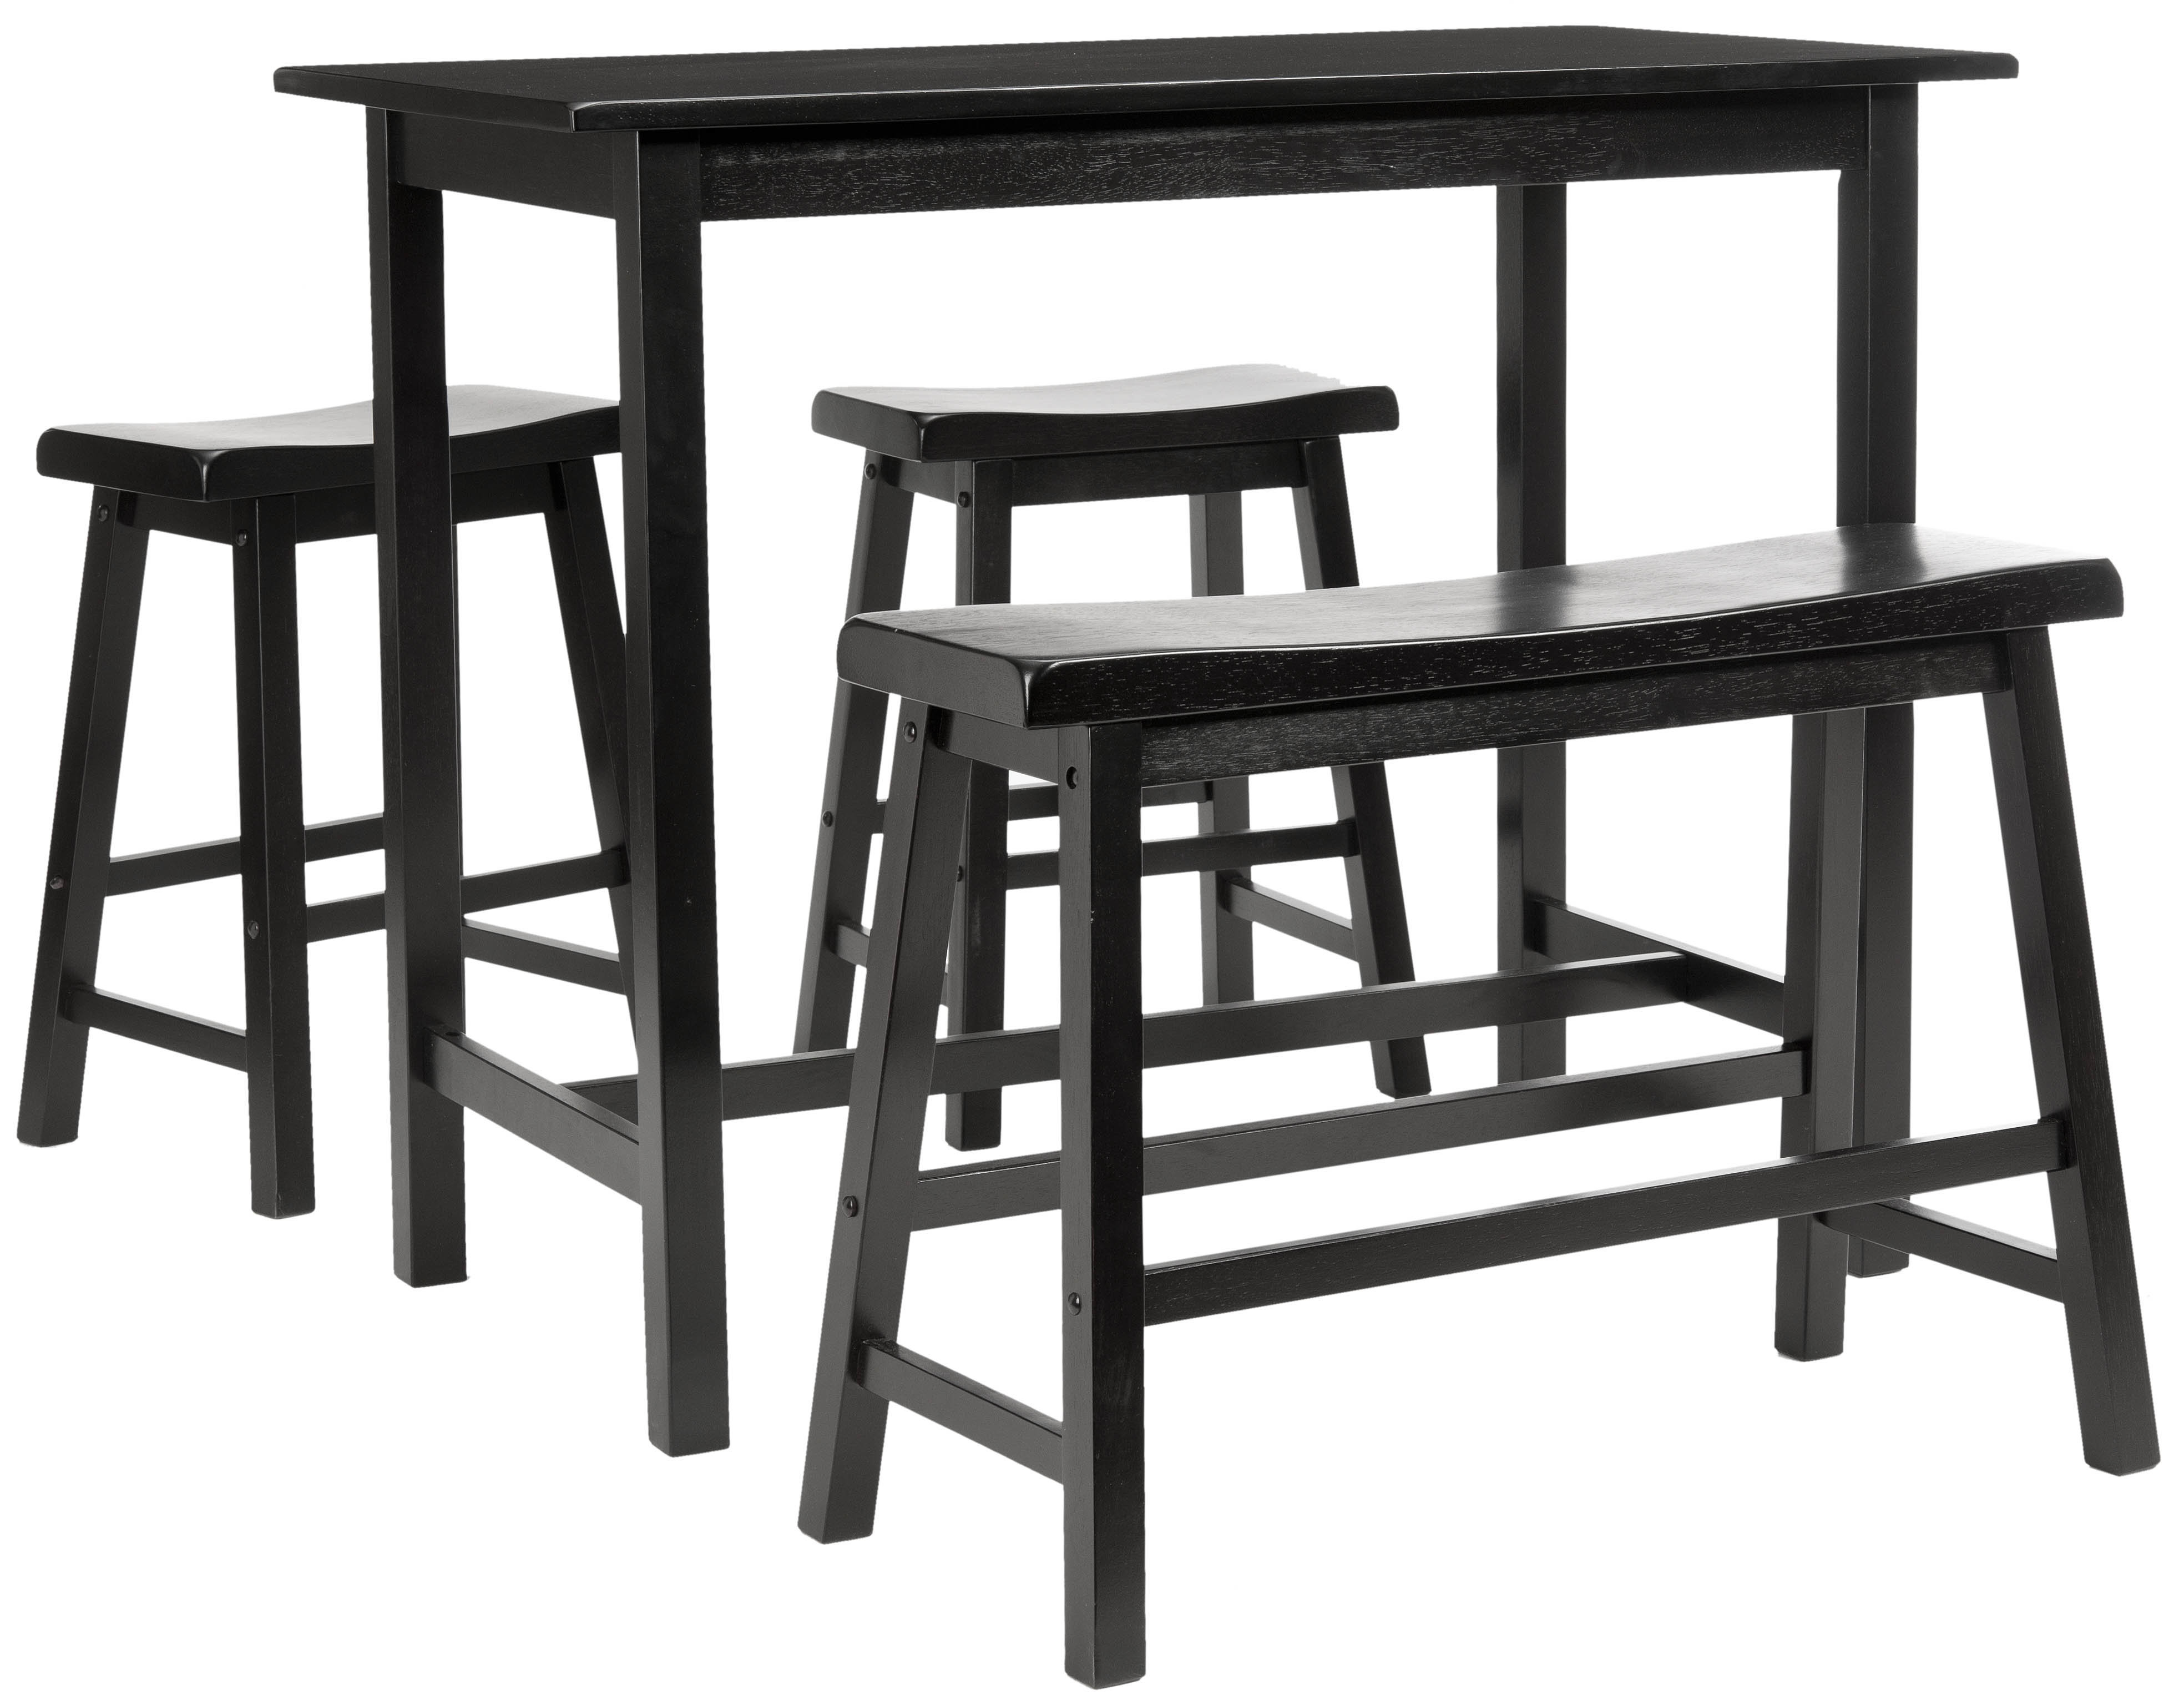 Chelsey 4 Piece Dining Set & Reviews | Allmodern Within Most Recently Released Ryker 3 Piece Dining Sets (Photo 15 of 20)